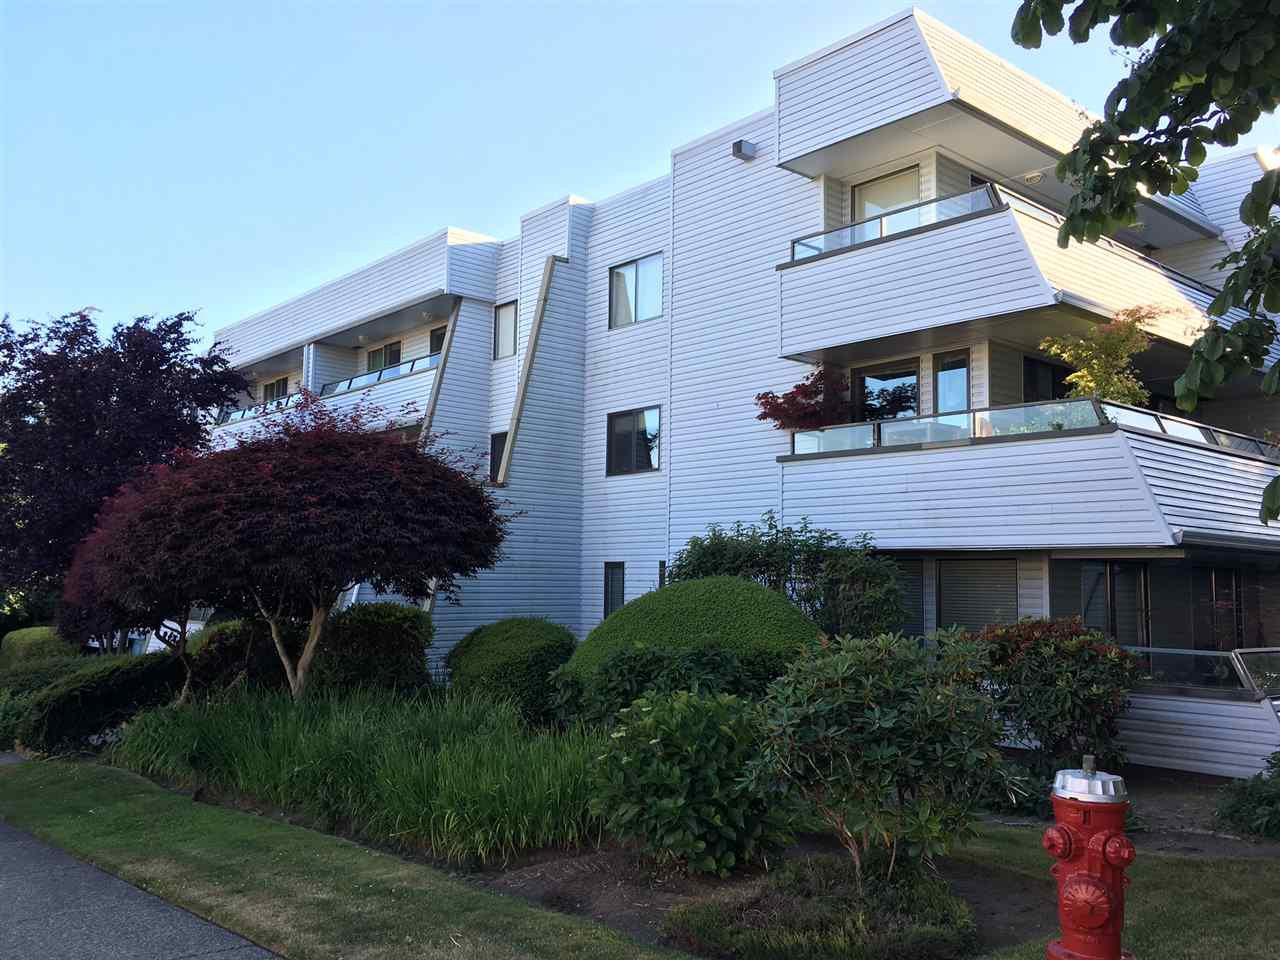 """Main Photo: 103 1341 GEORGE Street: White Rock Condo for sale in """"OCEANVIEW"""" (South Surrey White Rock)  : MLS®# R2183251"""